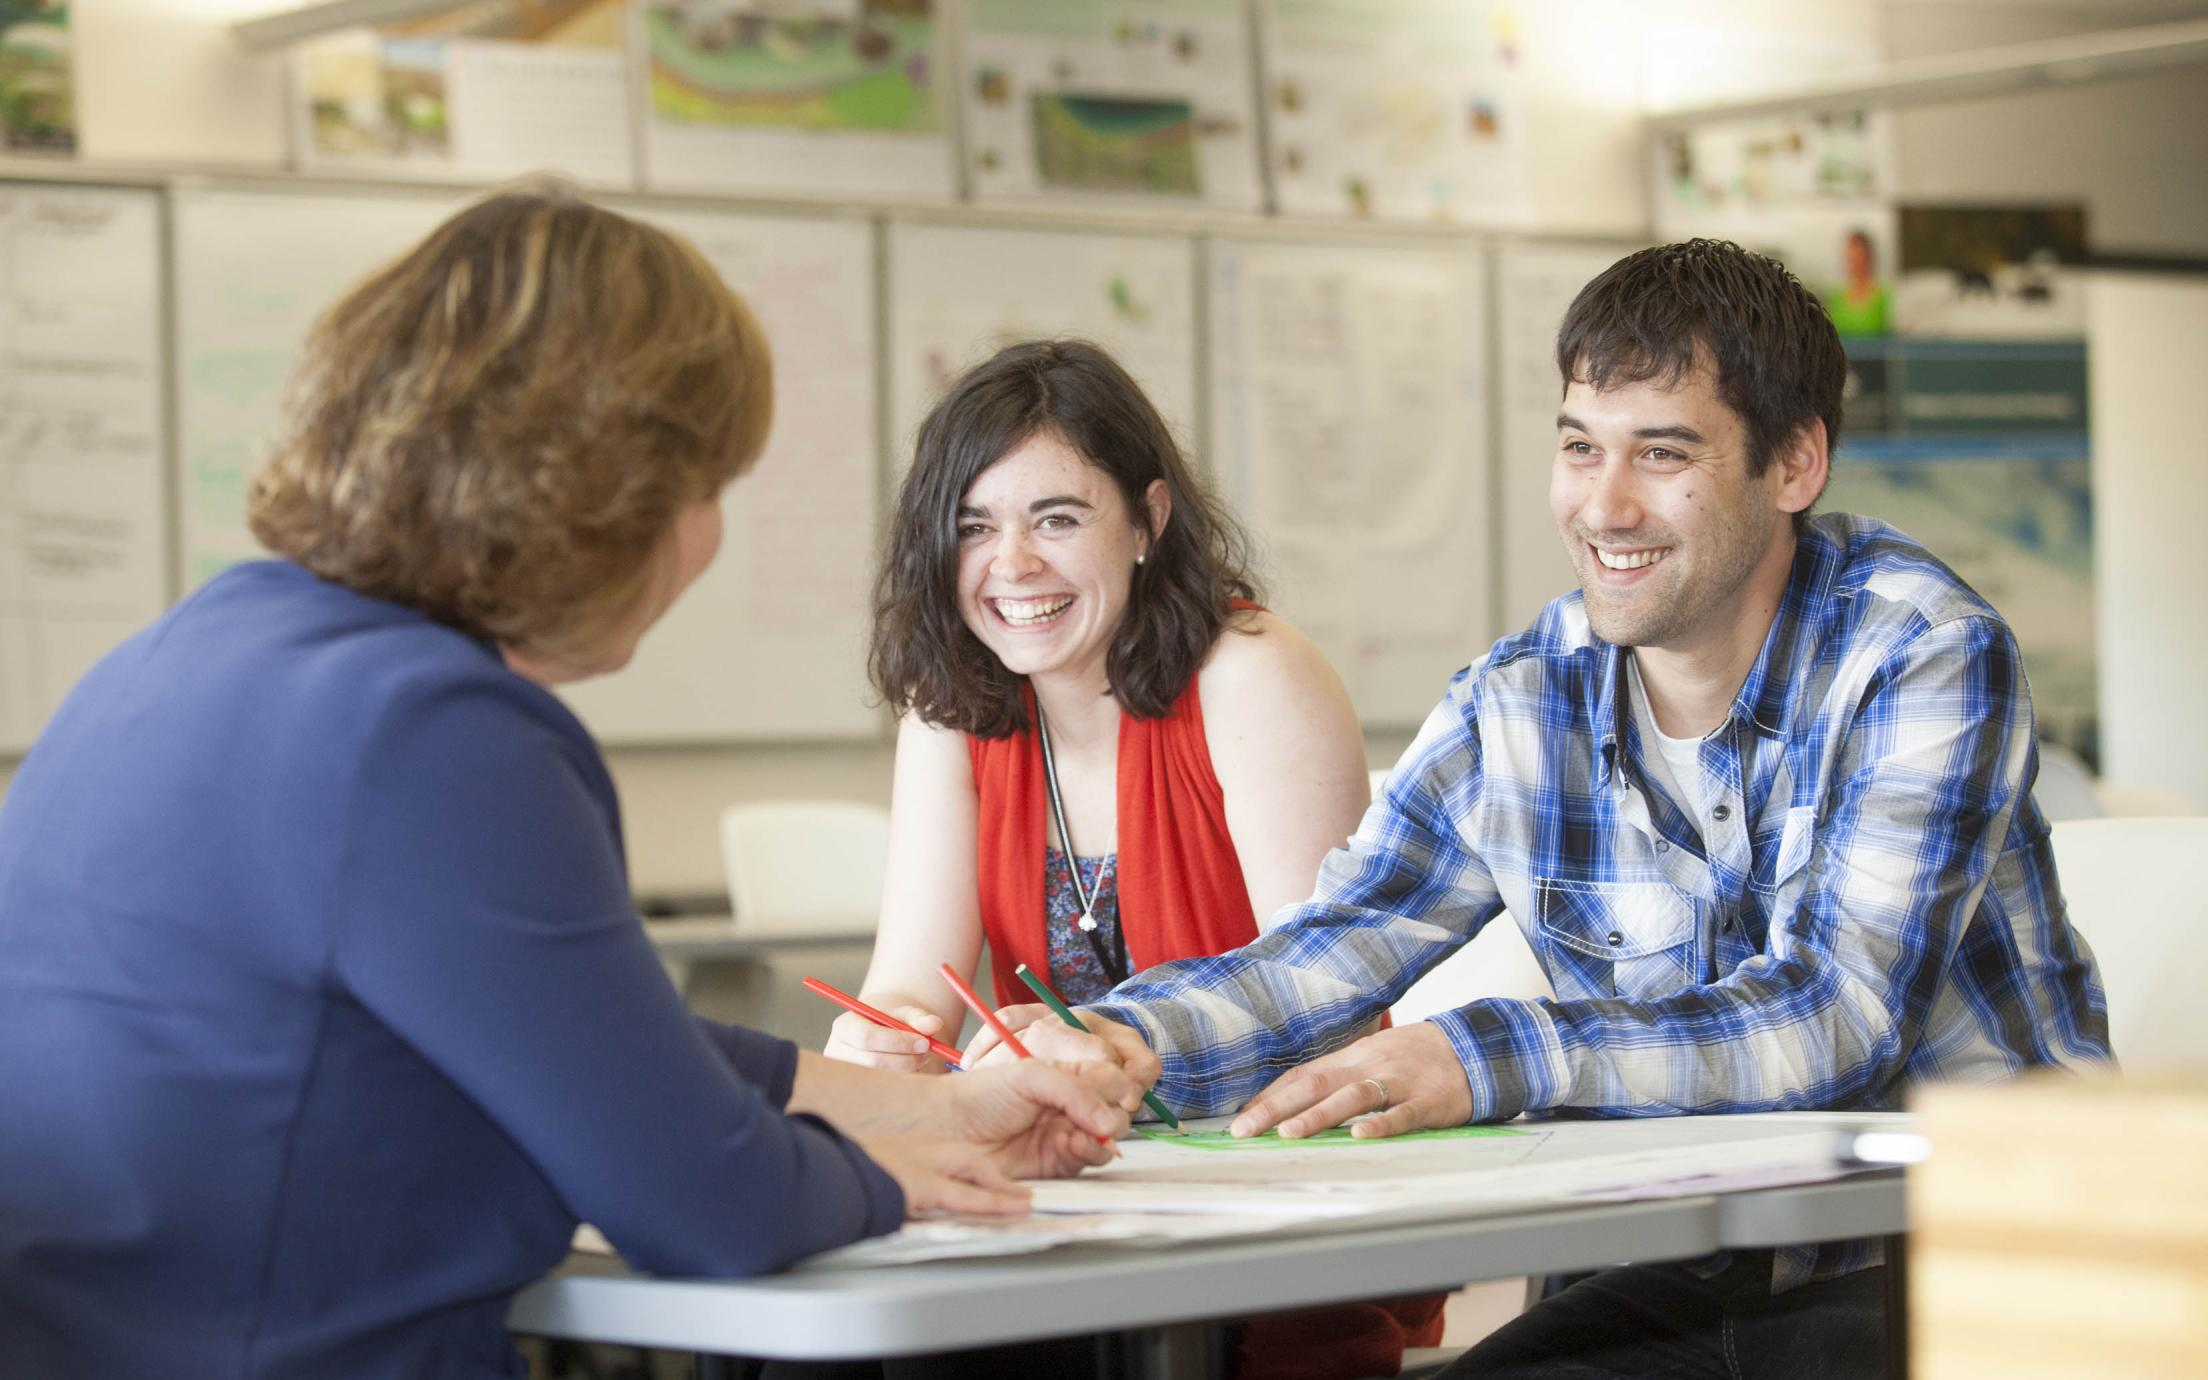 Master of Community Planning students on their journey to pursue a career an urban planner